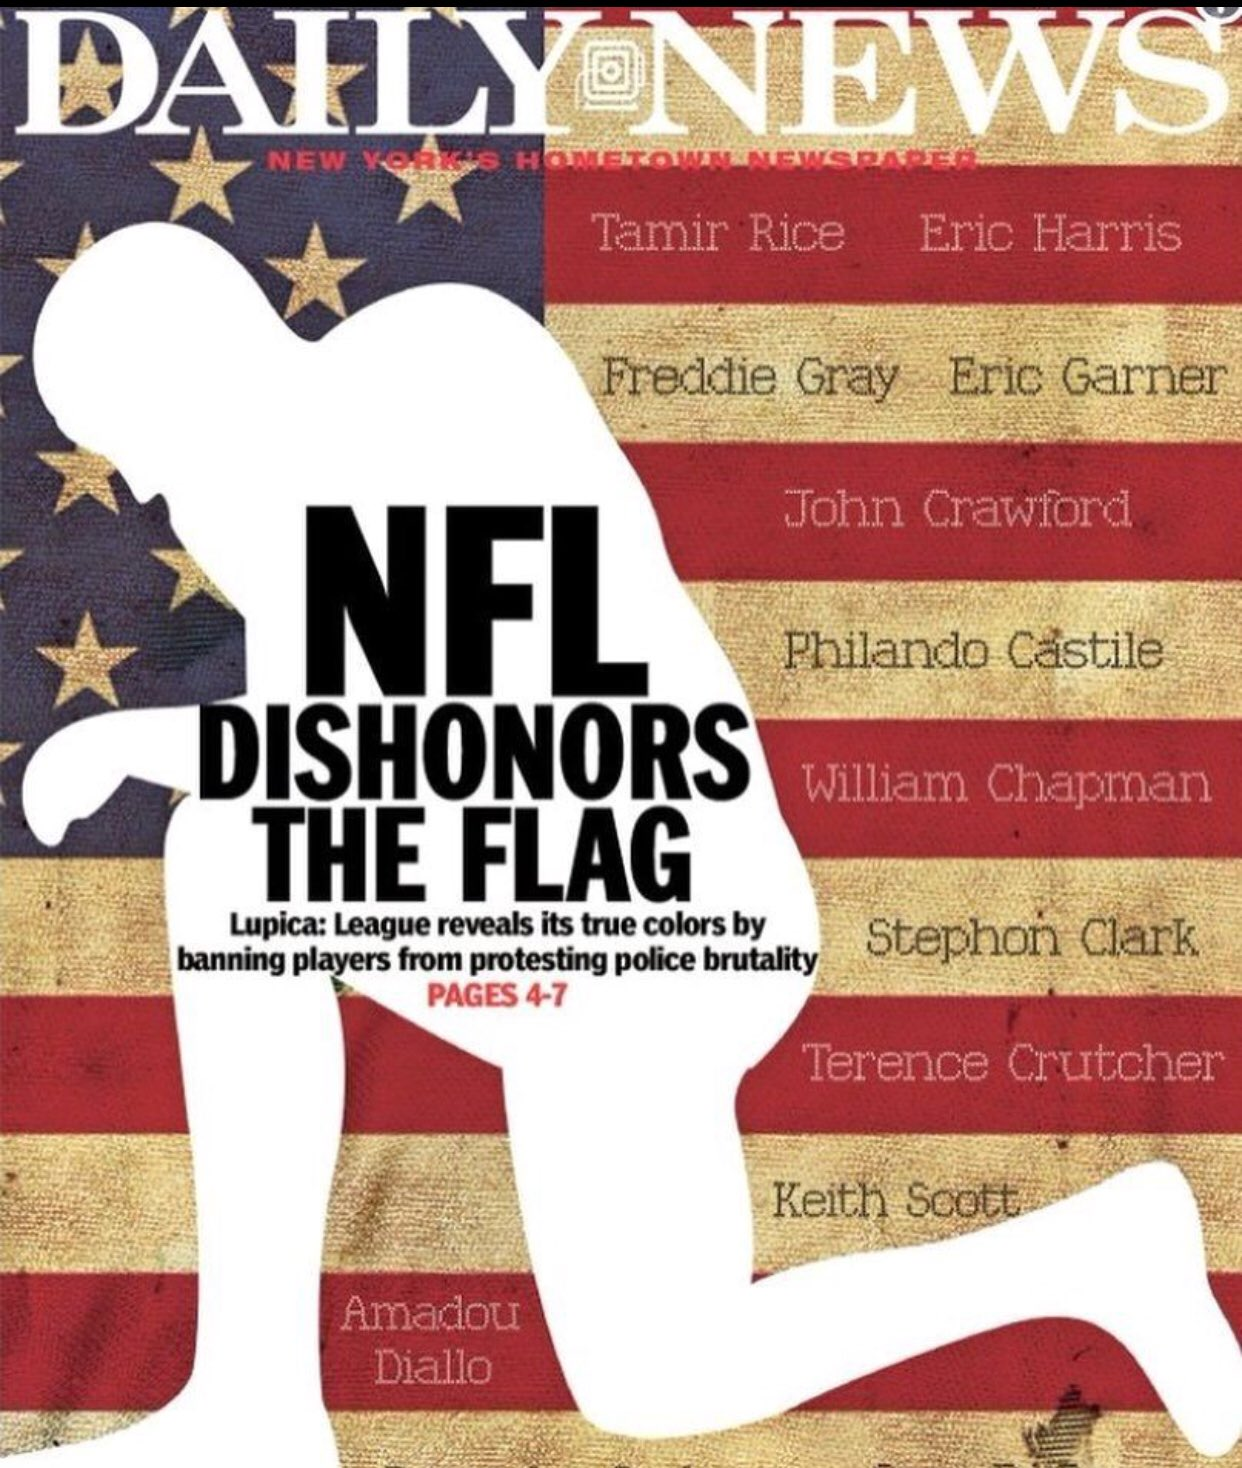 I deeply disagree with the decision of the NFL.   Their decision is an affront to the American ideal of protest and free speech. https://t.co/93SsUuplZX